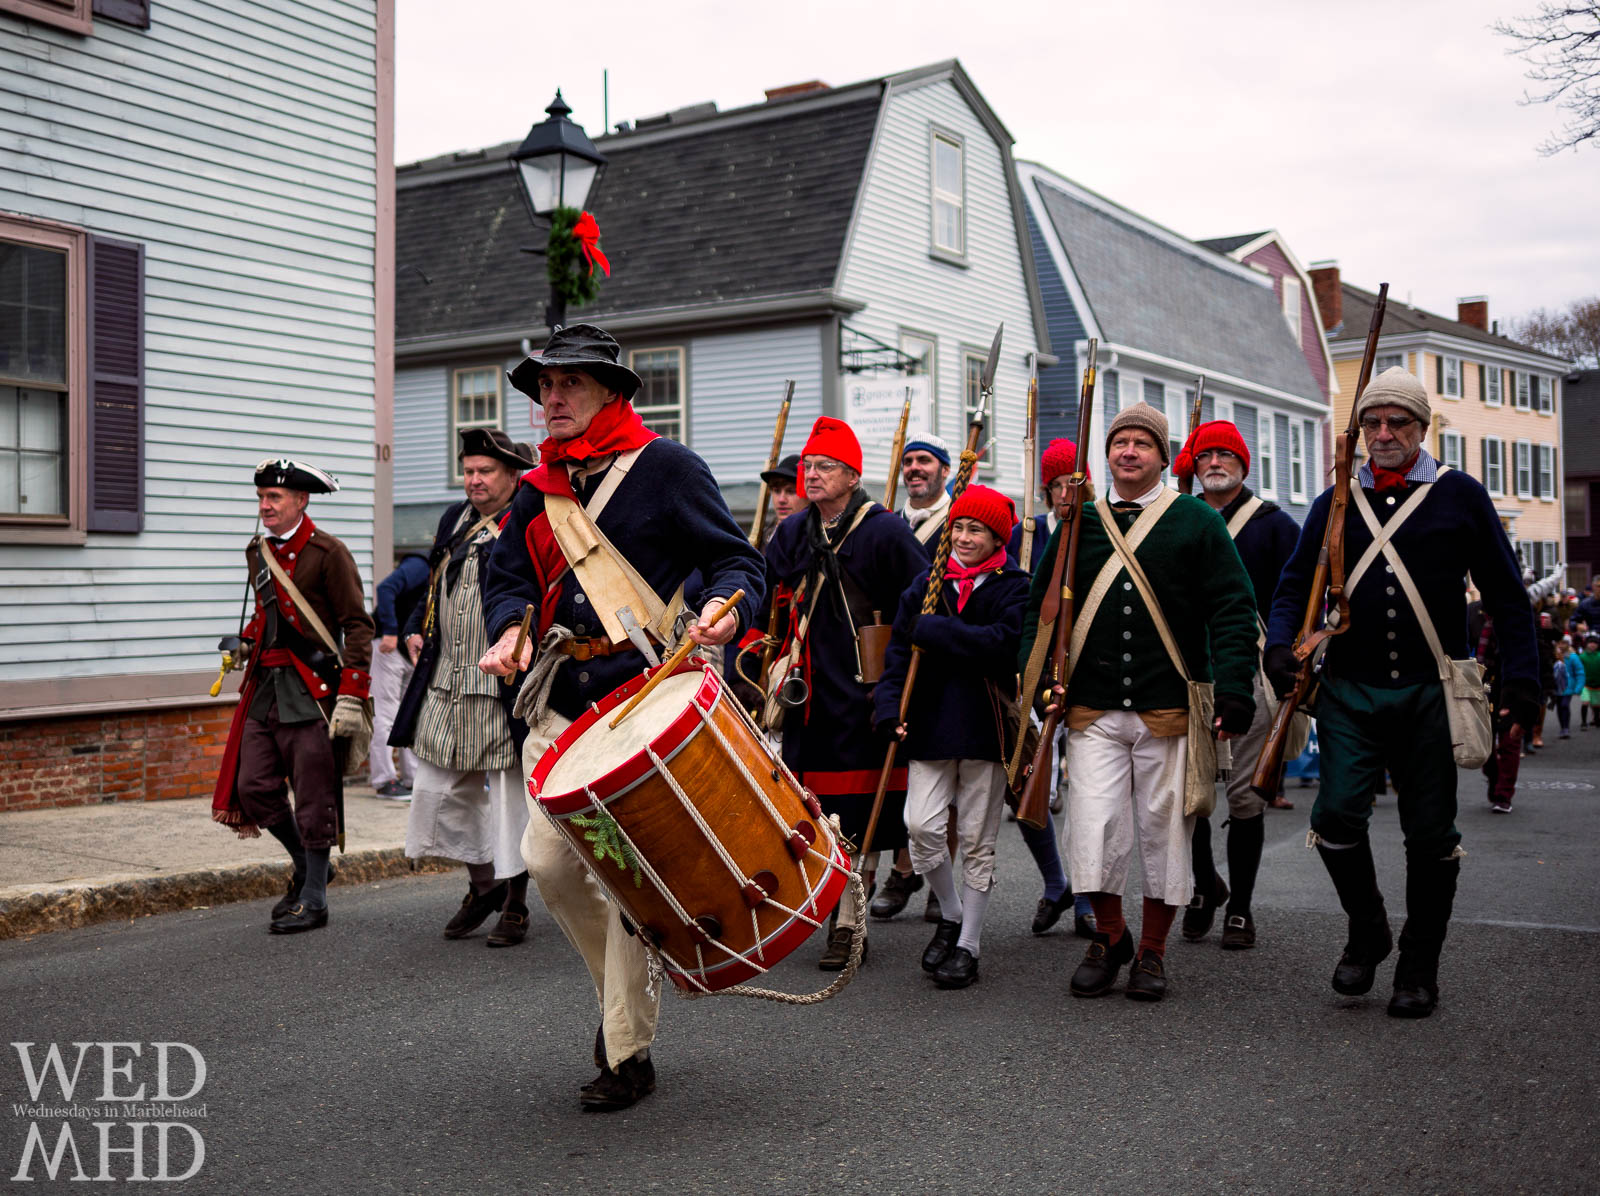 Glover's Regiment leads the annual Marblehead Christmas walk parade with everyone marching to the beat on State Street before turning on to Washington and continuing through town.